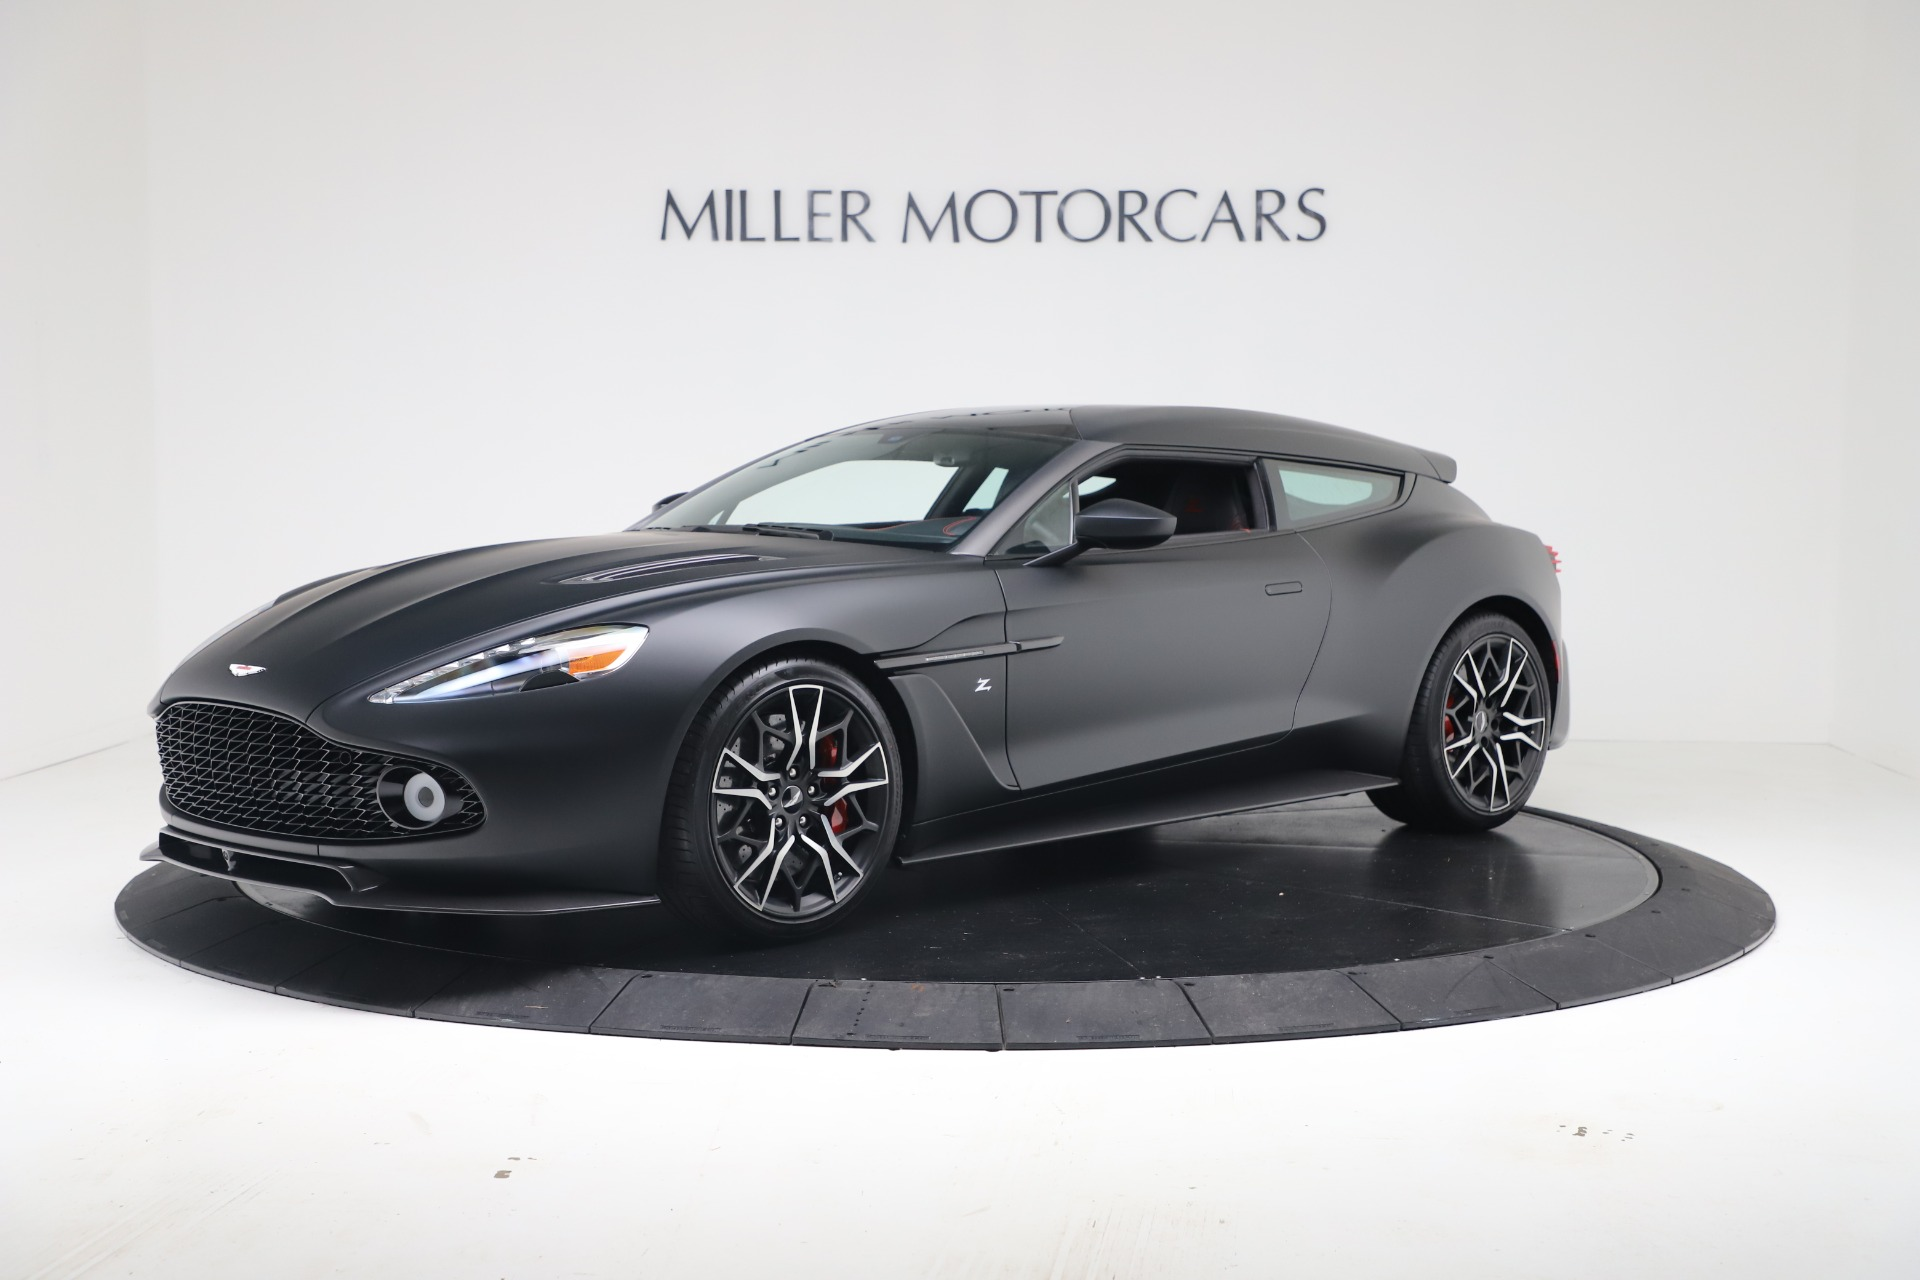 New 2019 Aston Martin Vanquish Zagato Shooting Brake for sale Sold at Bugatti of Greenwich in Greenwich CT 06830 1